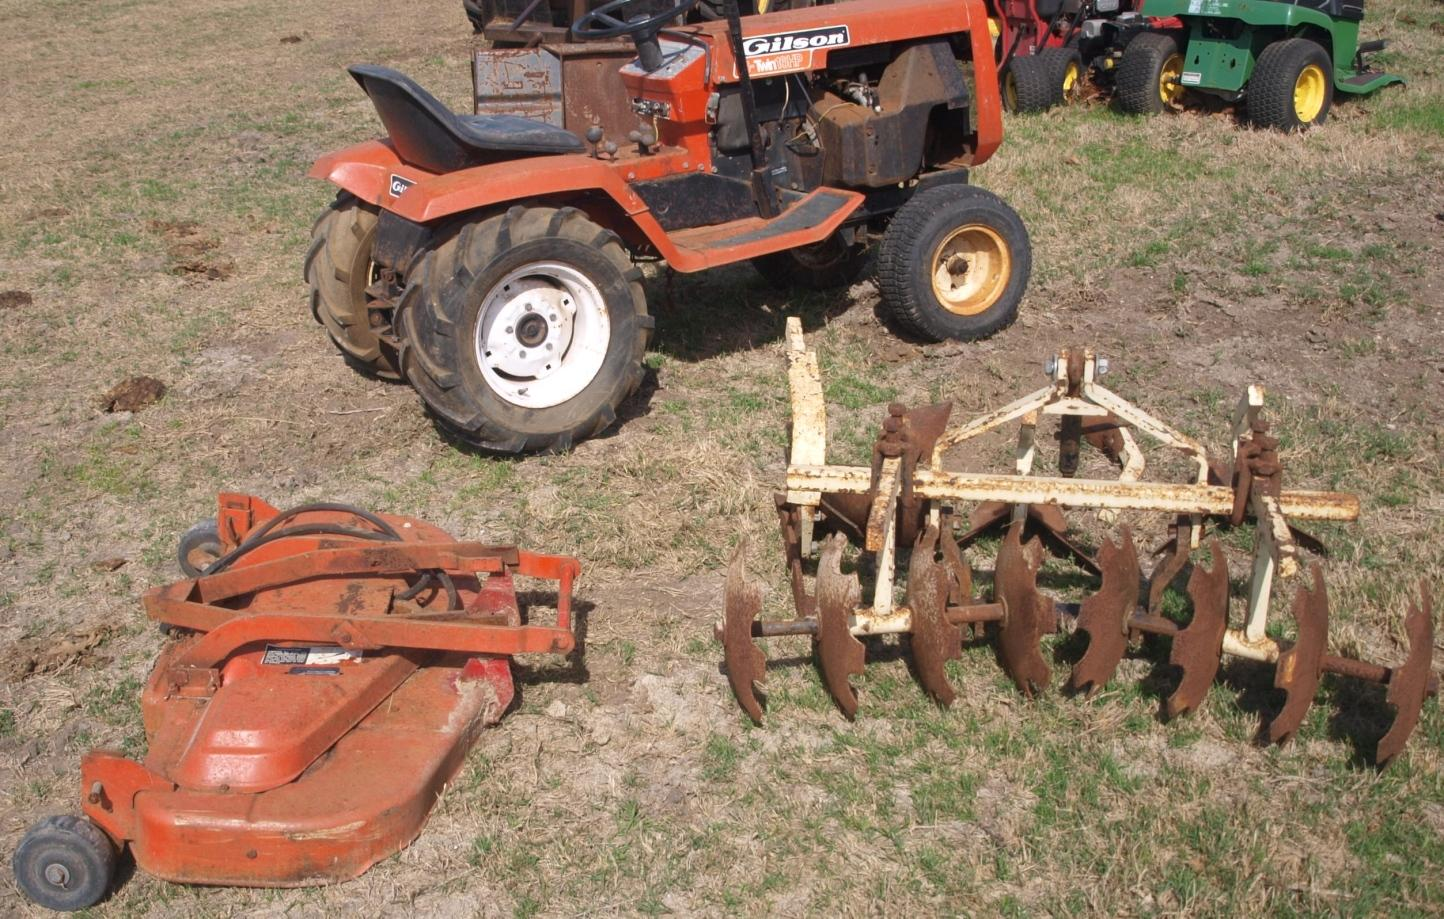 Find more Gilson Riding Mower Garden Tractor With Implements Disk ...